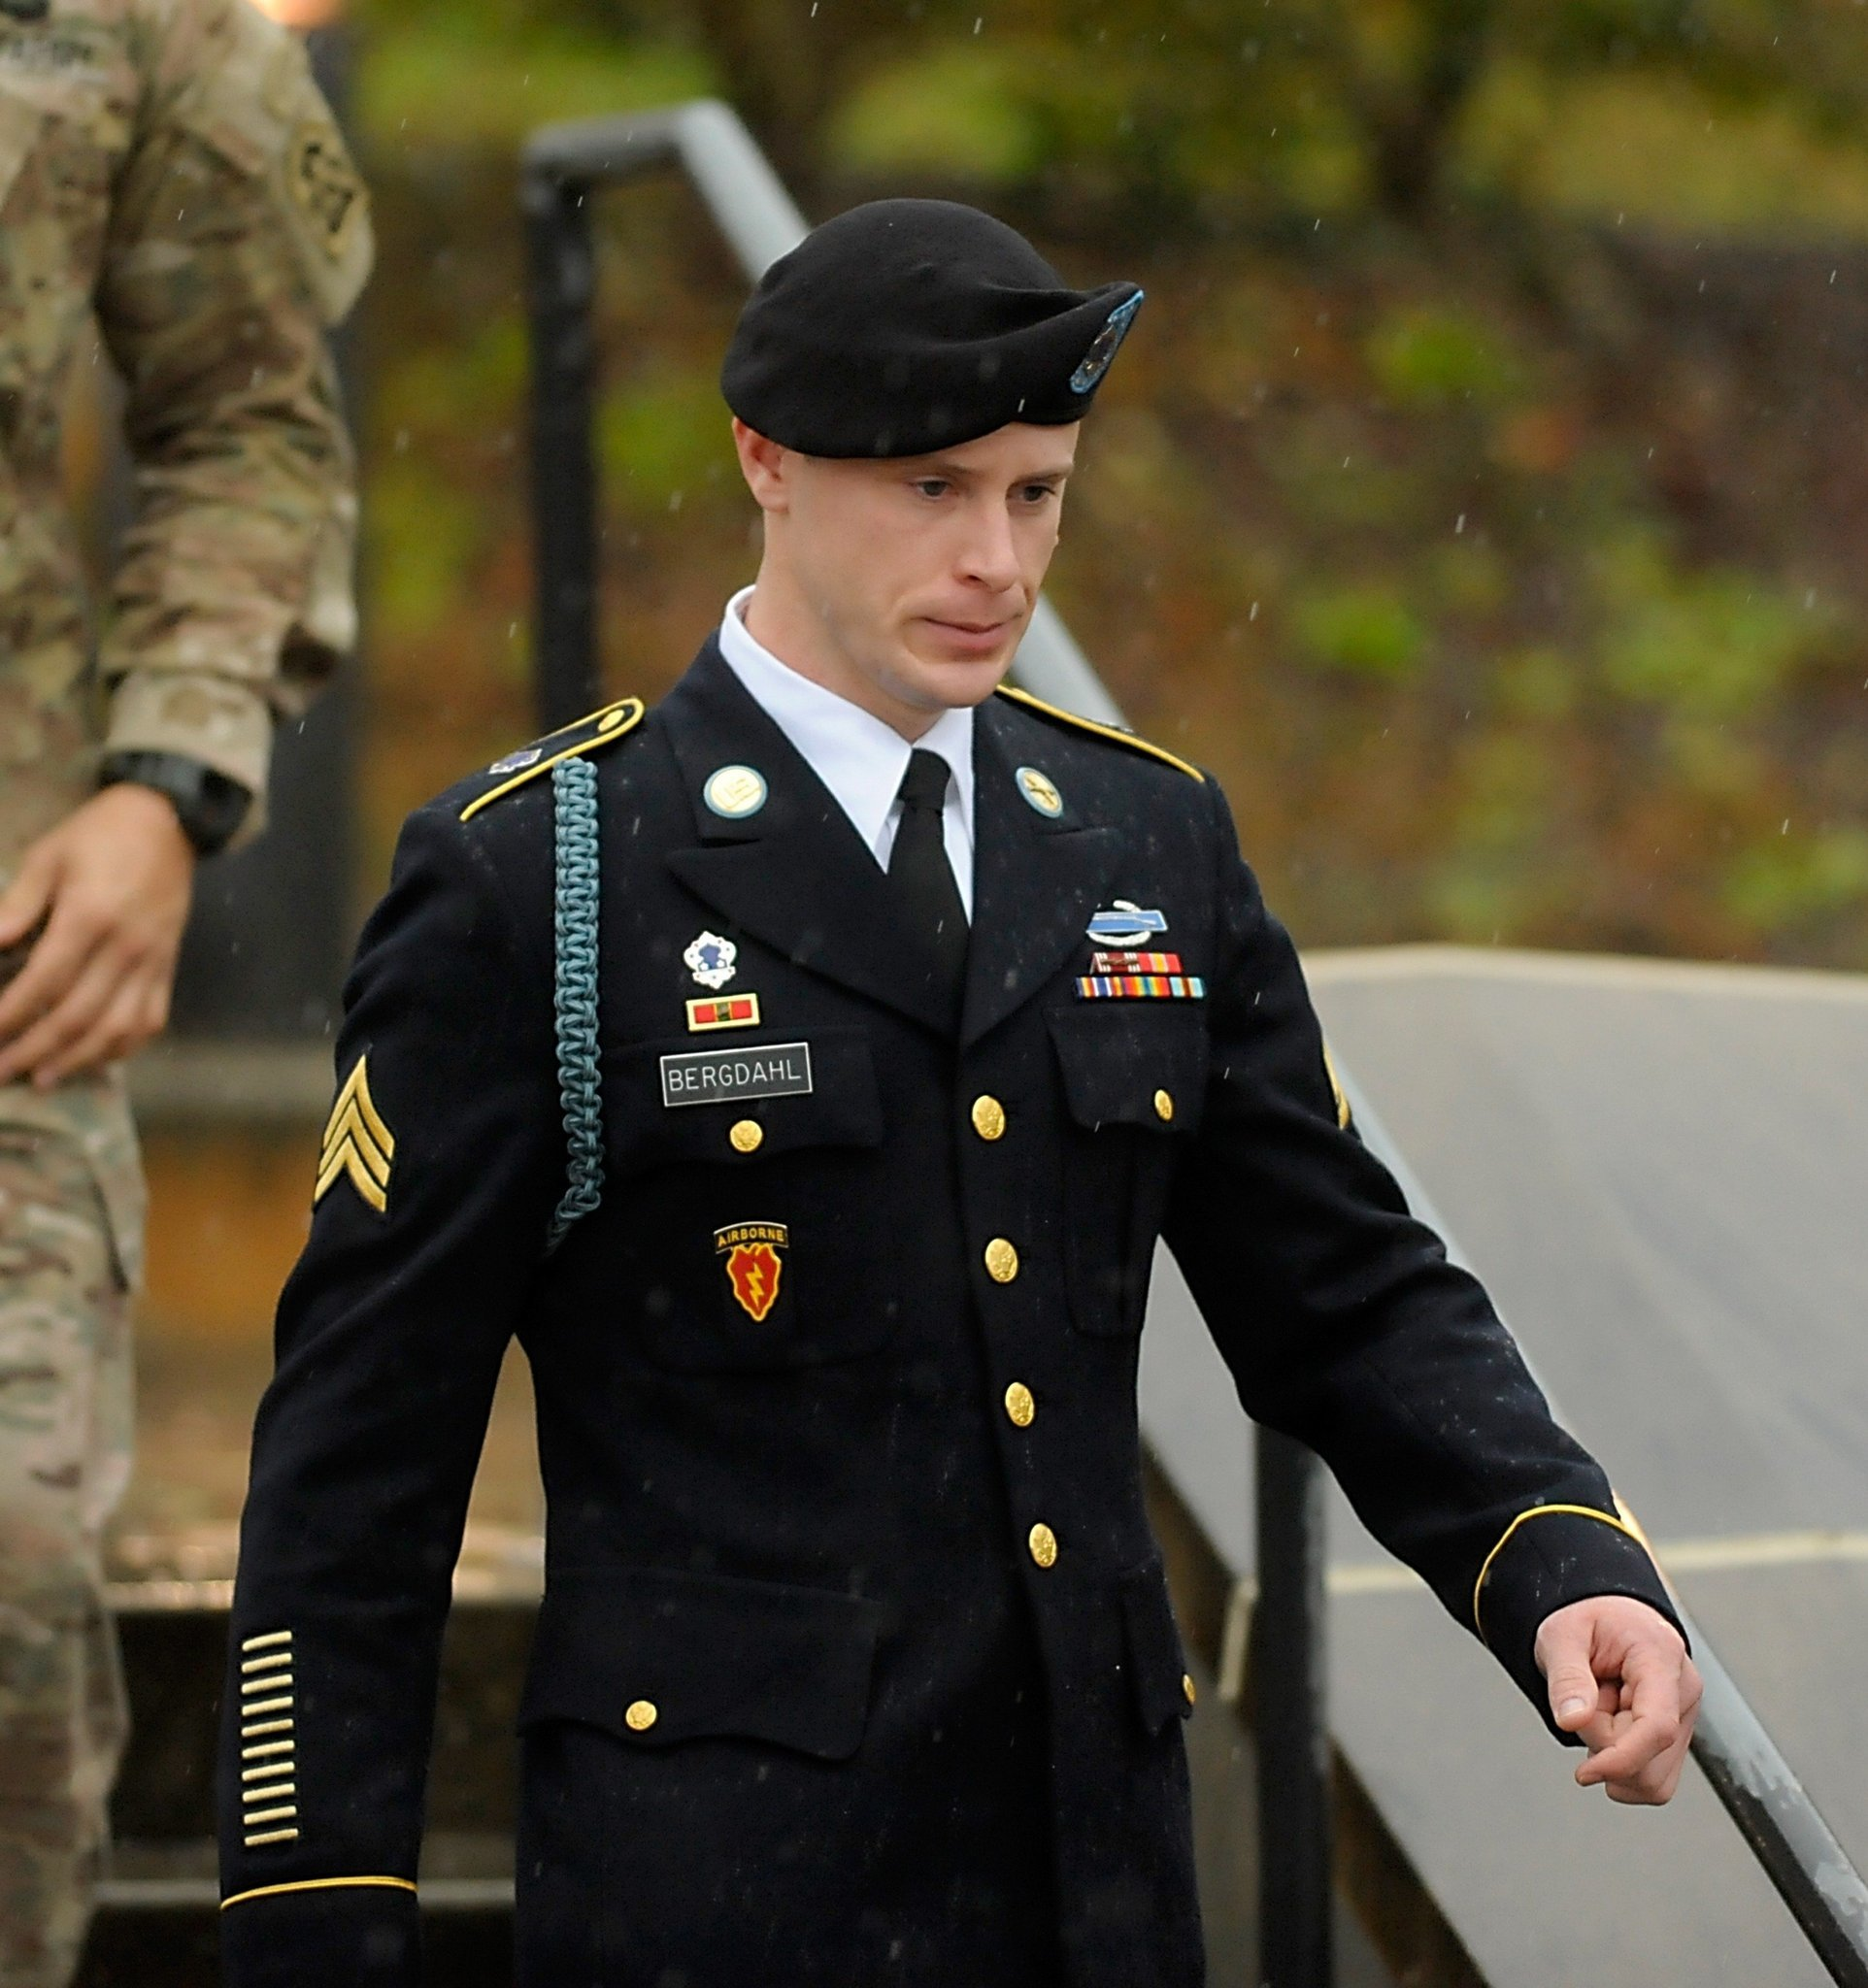 Bergdahl To Be Court Martialed Under New Commander In